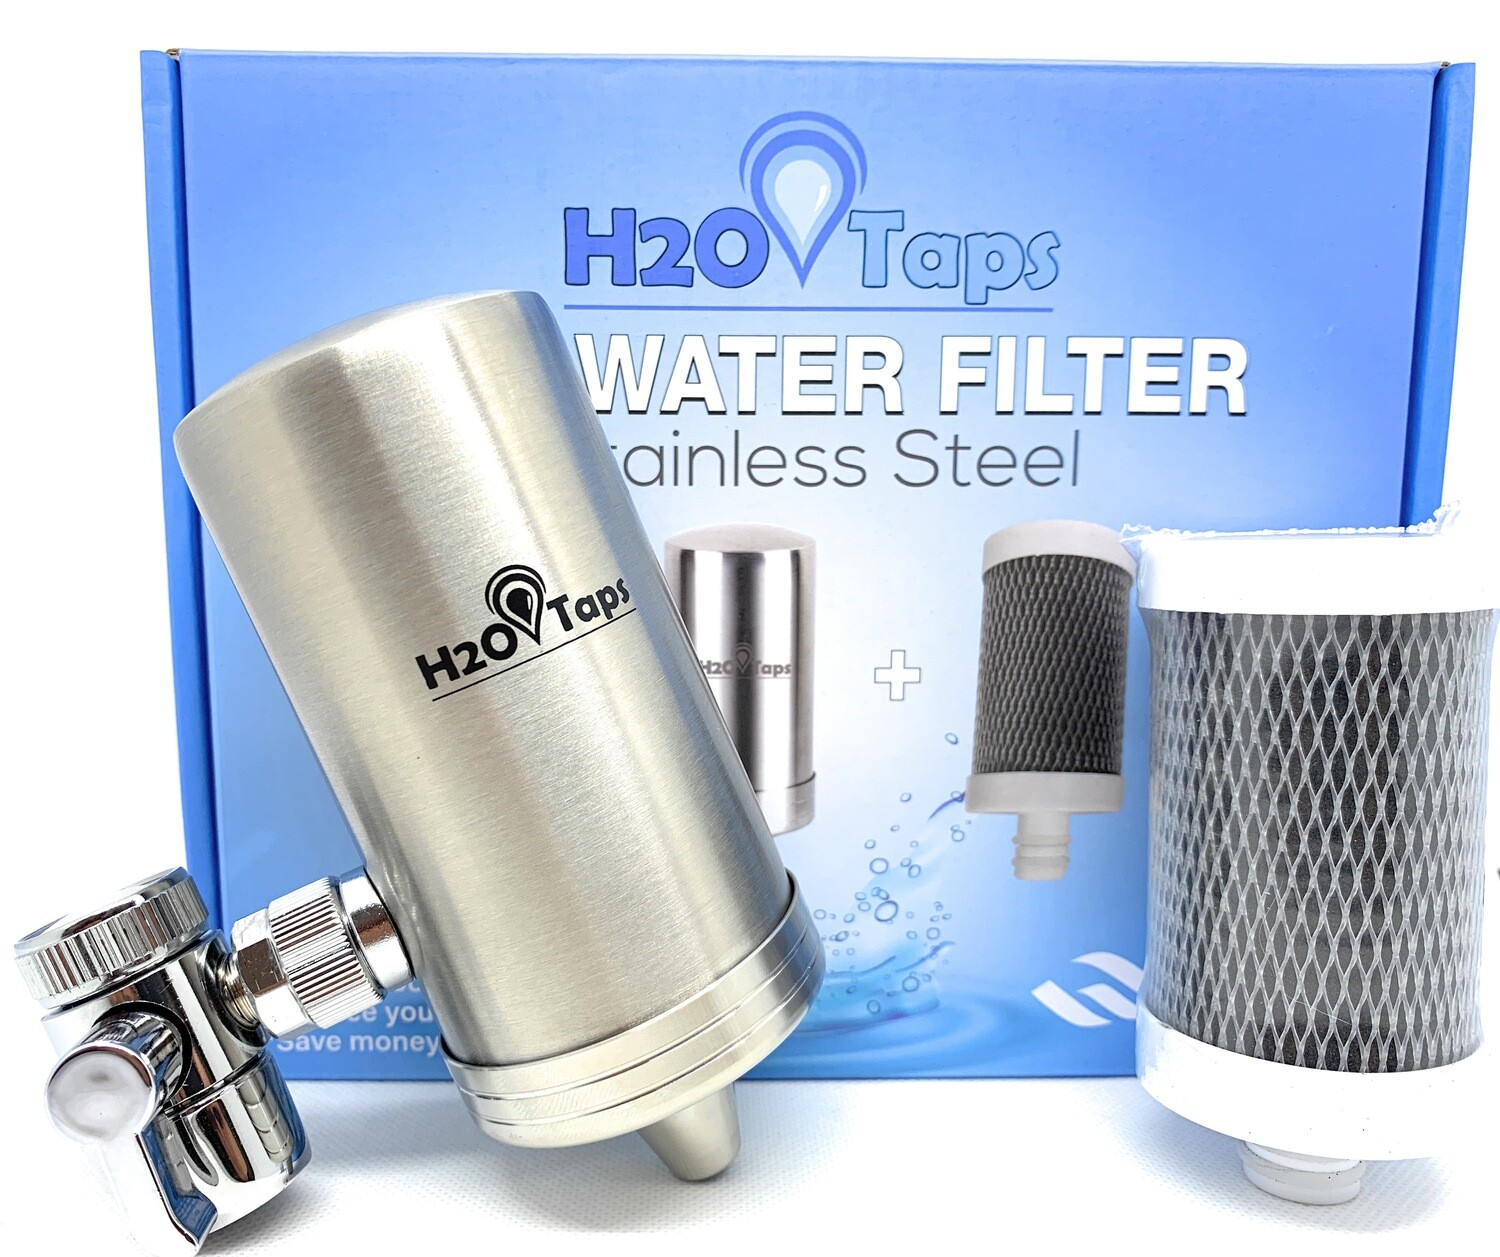 Tap Water Filter + 1 Cartridge - 3 months Filtered Water - Trial Pack